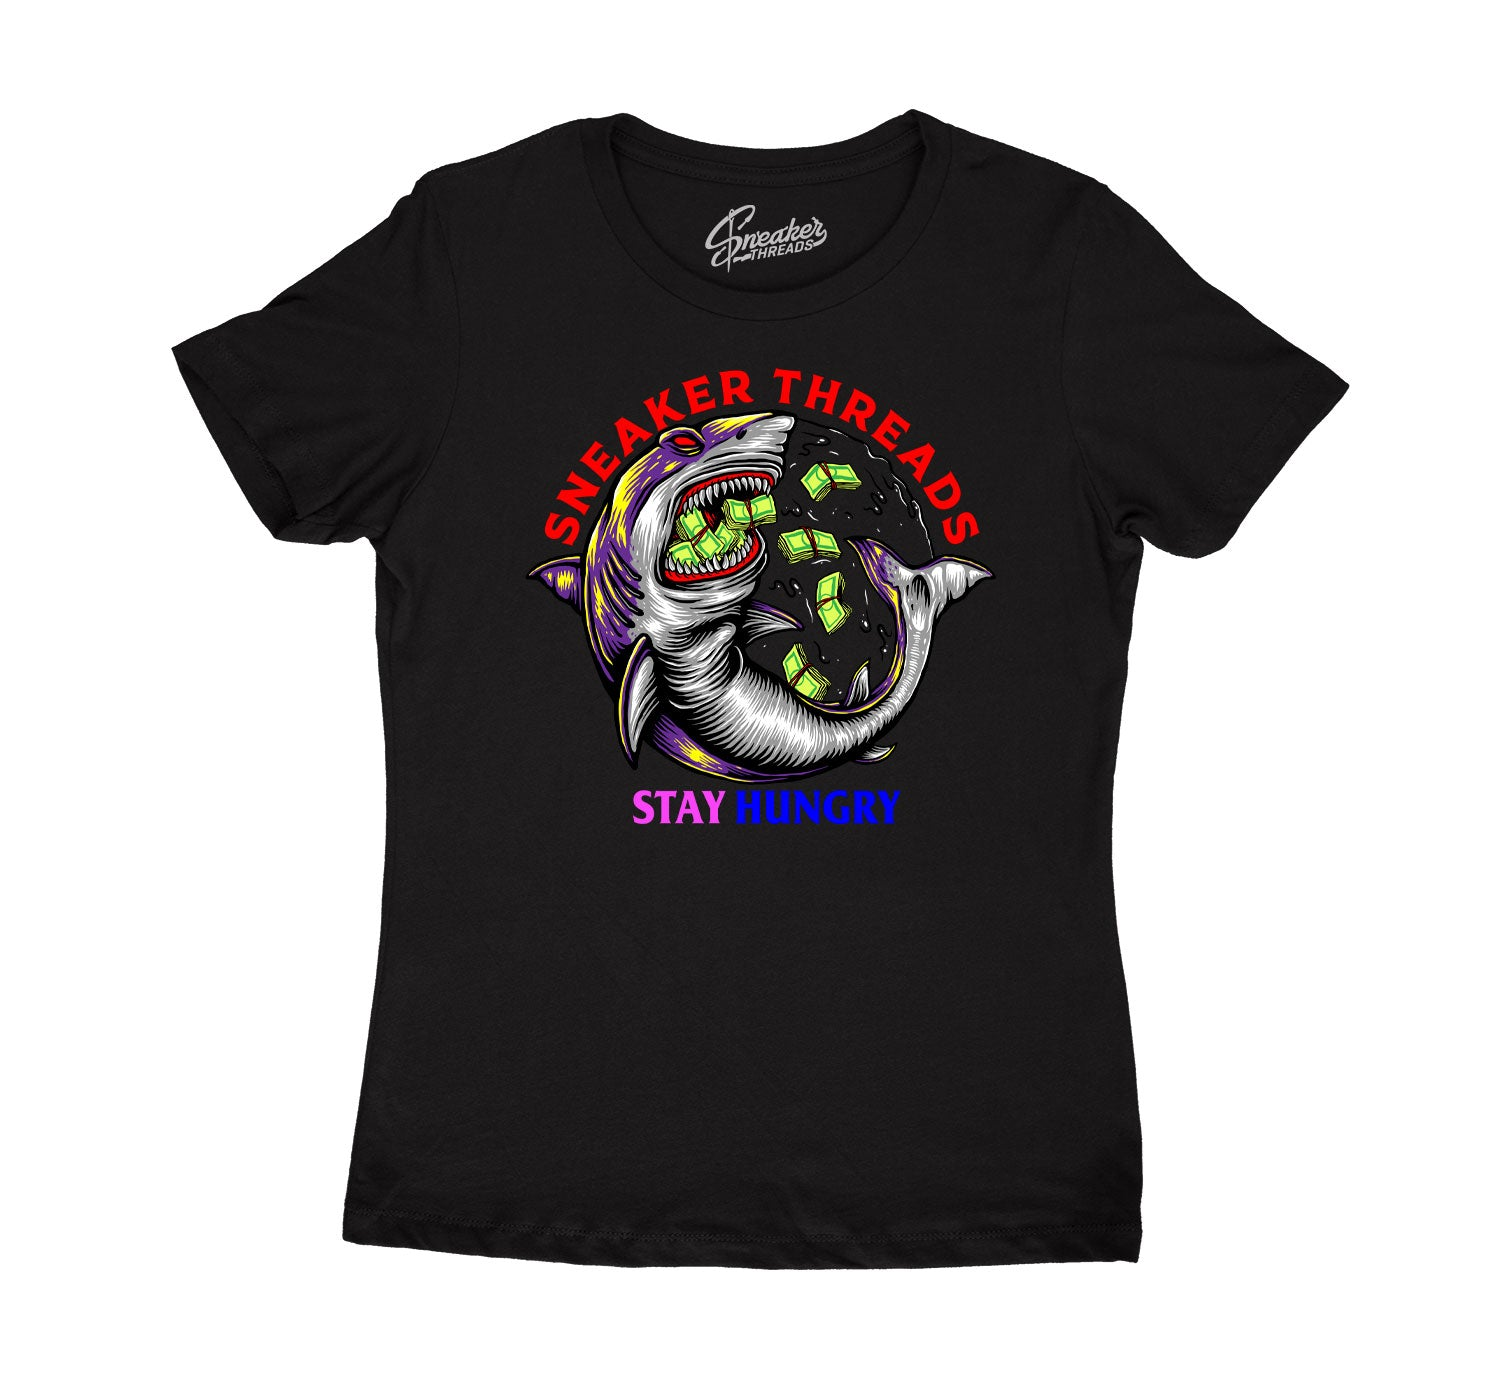 T shirt collection for women to match the Jordan 5 what the sneaker collection